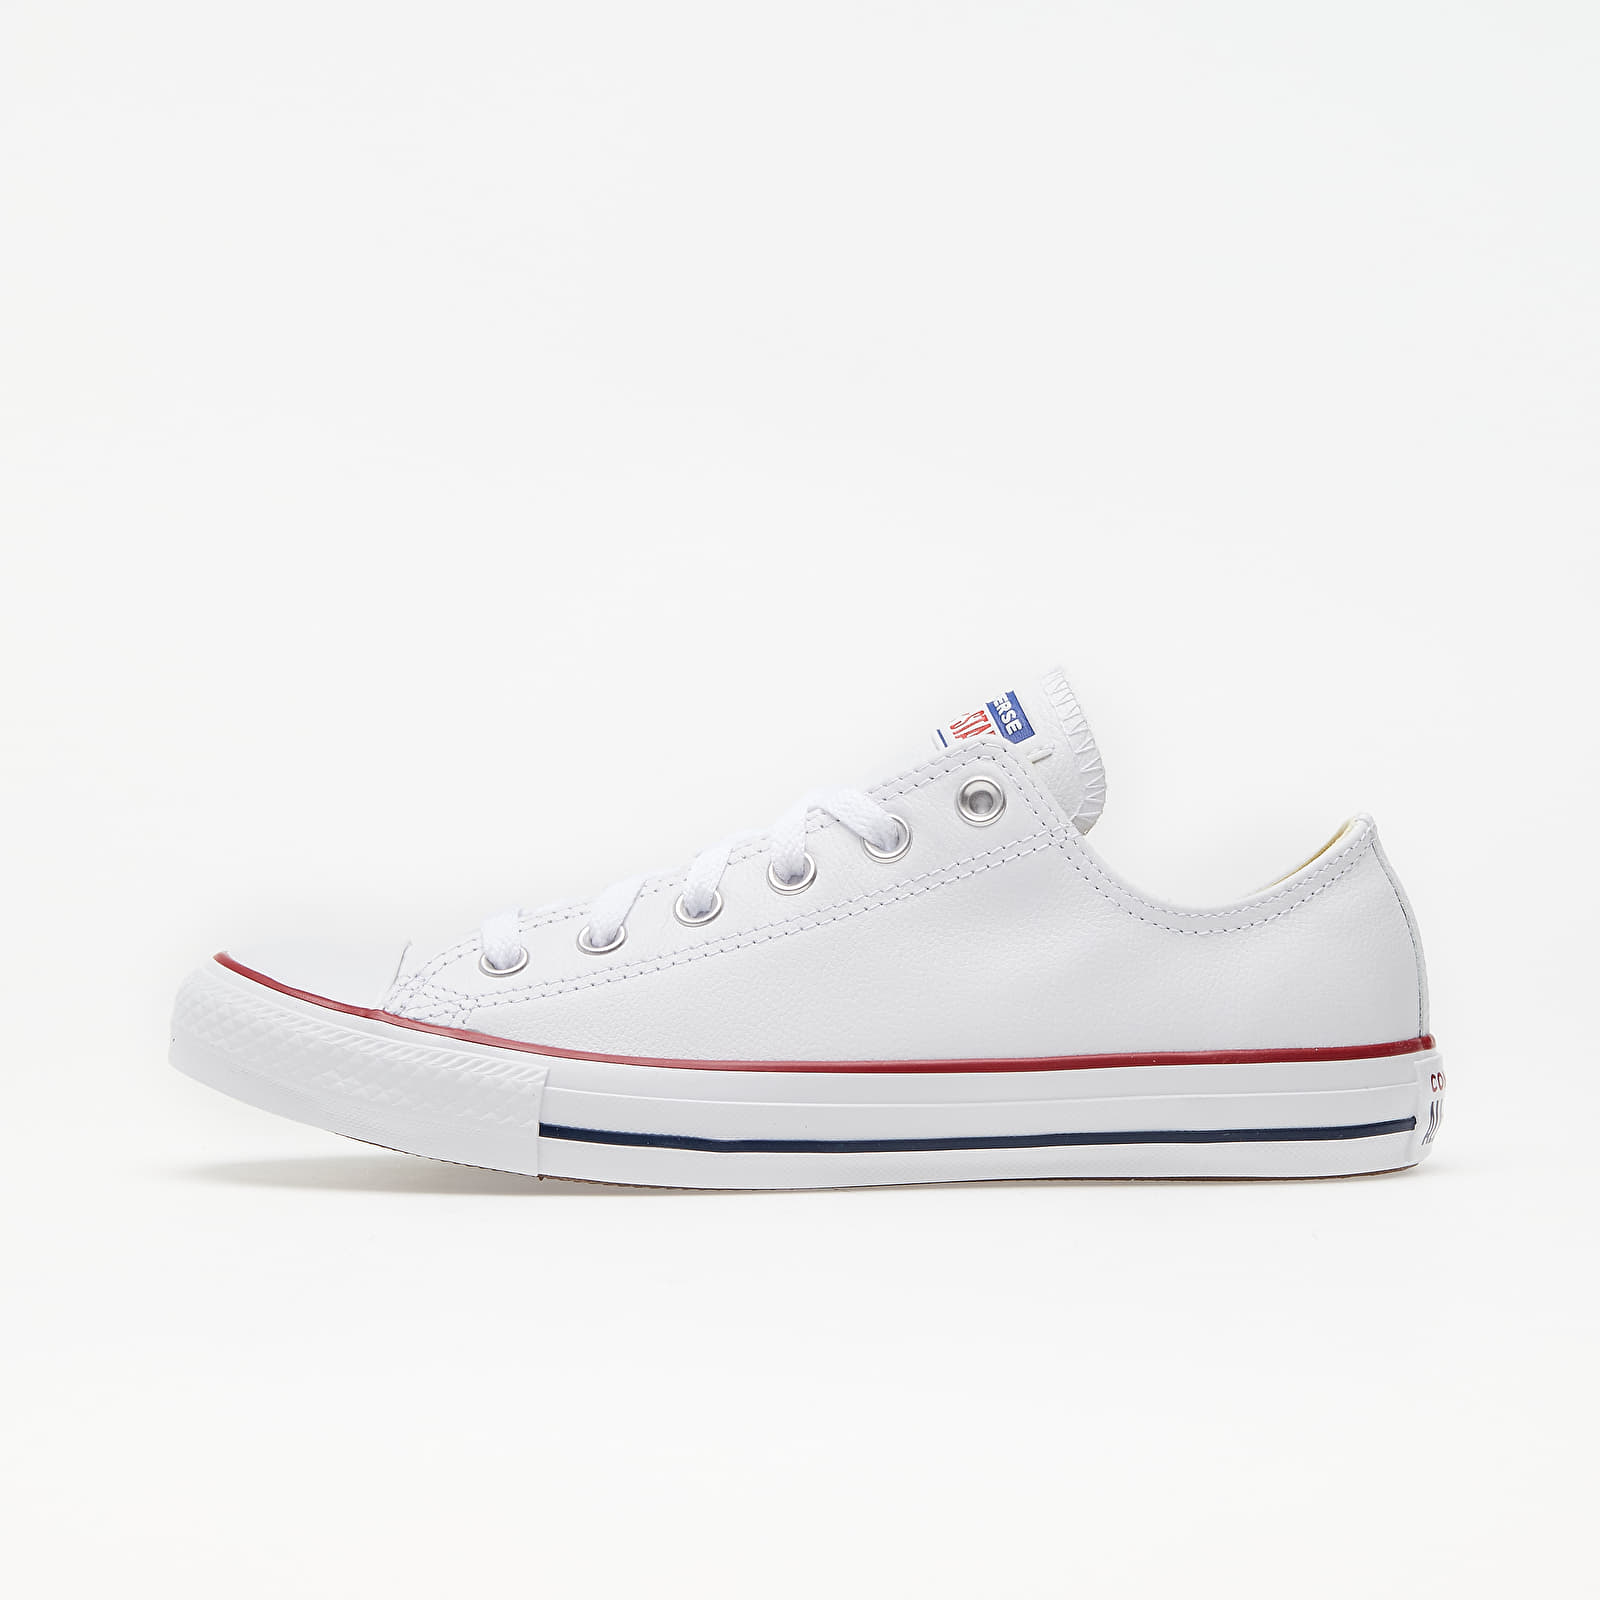 Converse Chuck Taylor All Star OX White 3